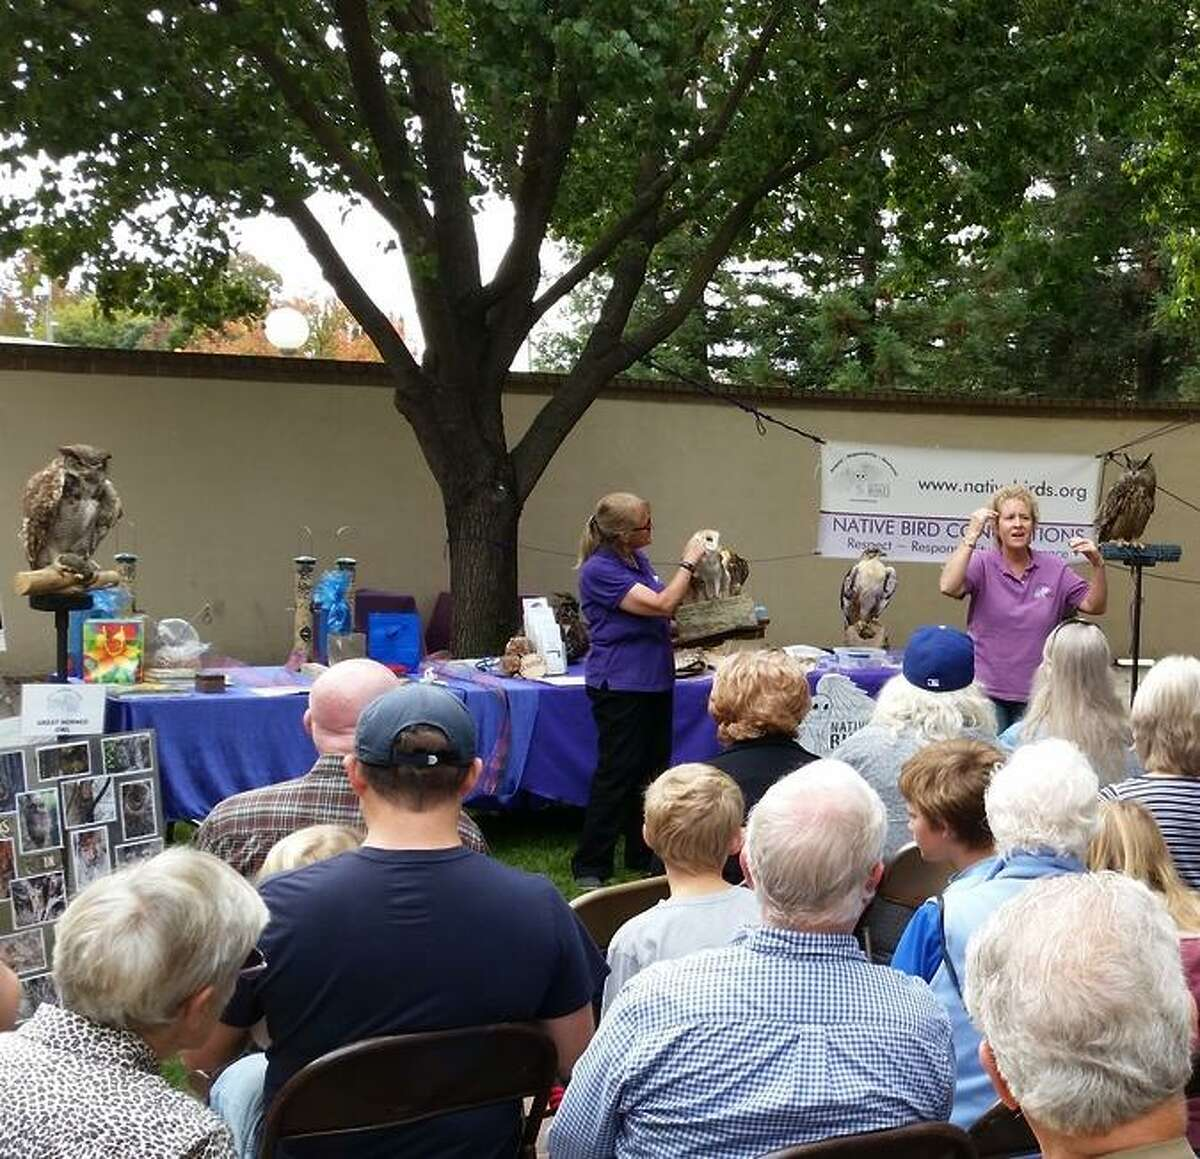 Lodi's annual Sandhill Crane Festival offers birding tours in nearby wetland preserves along with expert speakers, arts and crafts, vendors and children's activities at Hutchins Street Square.